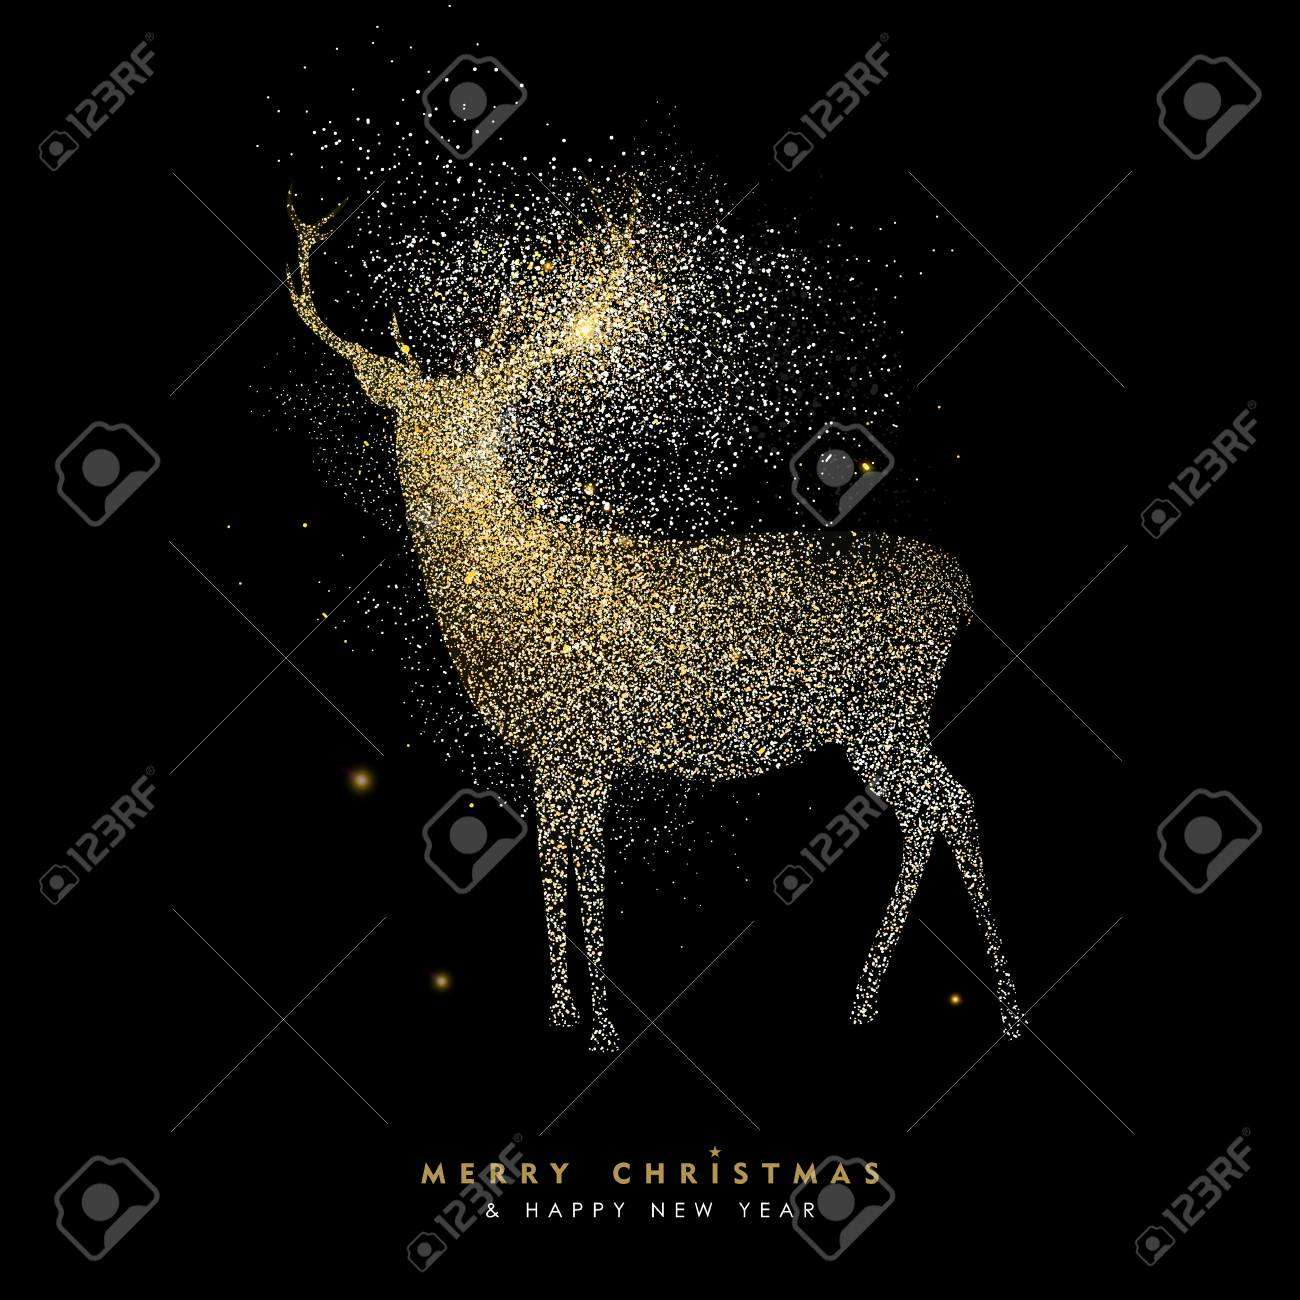 merry christmas and happy new year luxury greeting card design gold reindeer silhouette made of